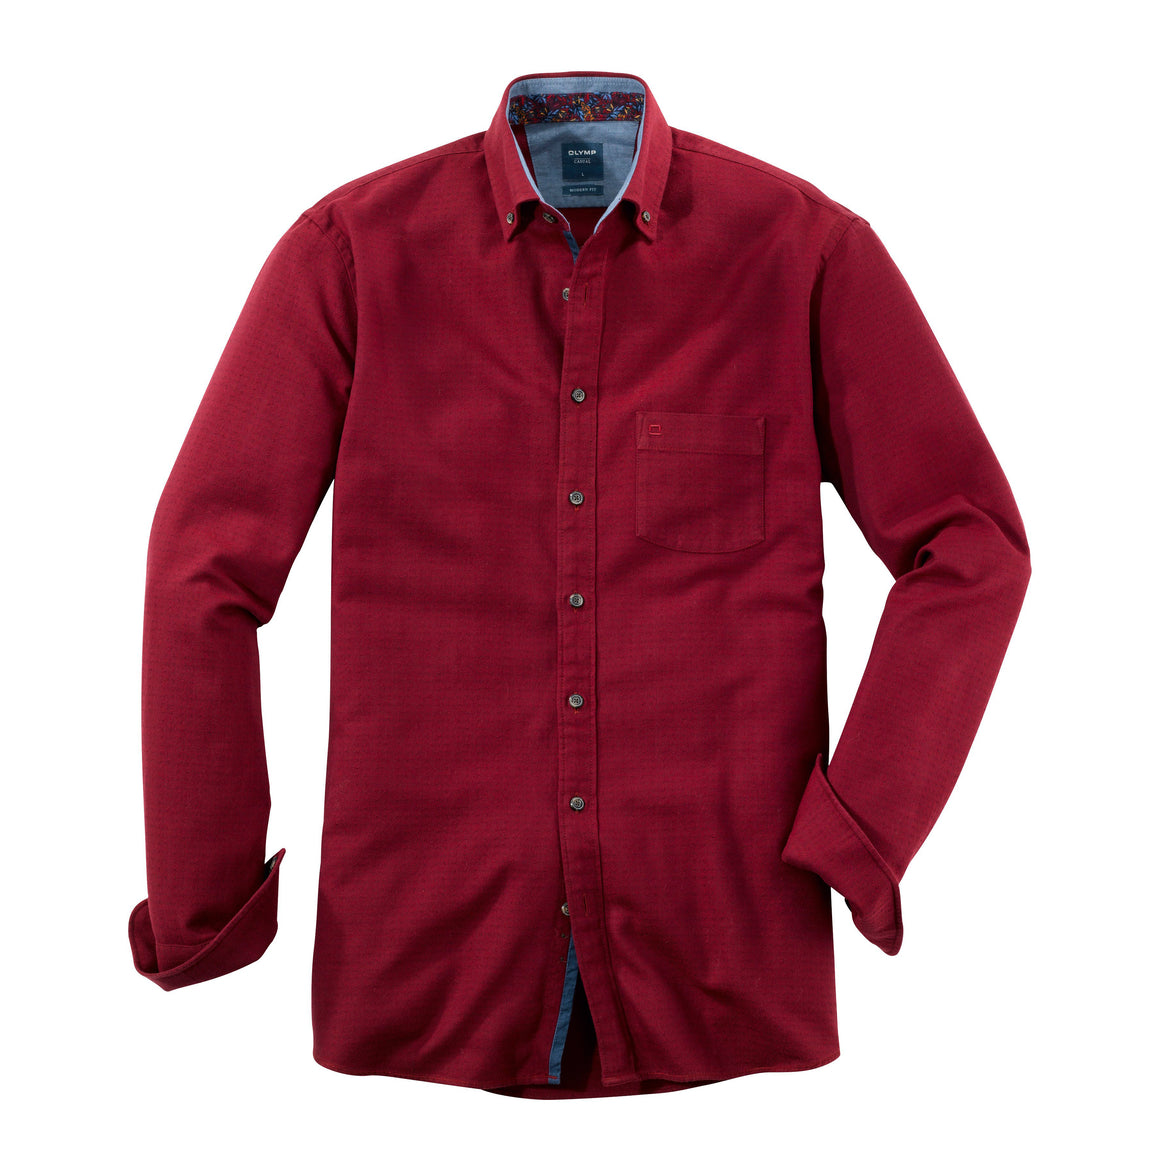 Herringbone Dobby Shirt for Men in Deep Red